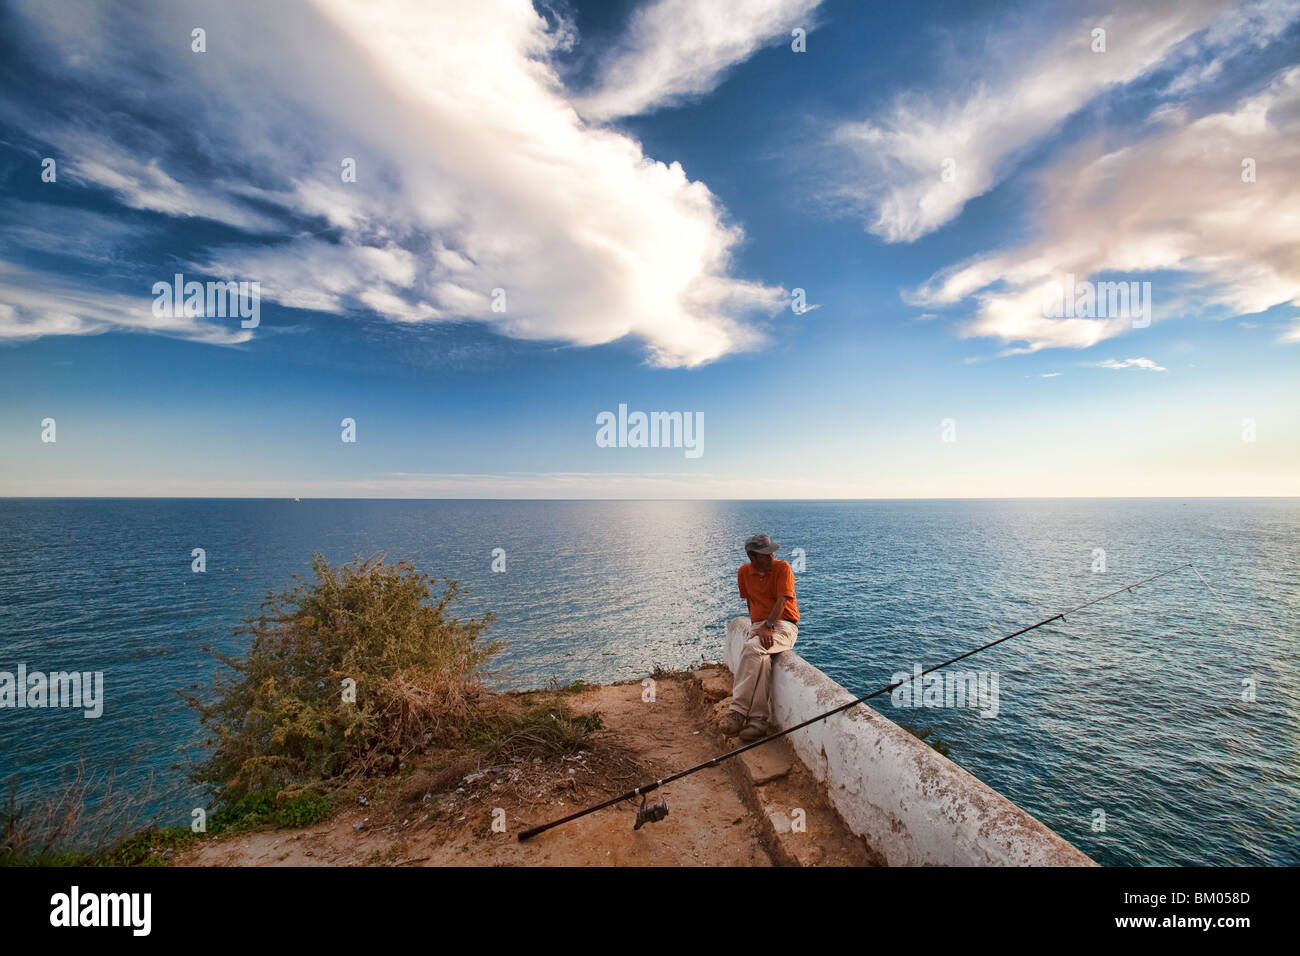 Fisherman on the top of a cliff, town of Porches, municipality of Lagoa, district of Faro, region of Algarve, Portugal - Stock Image